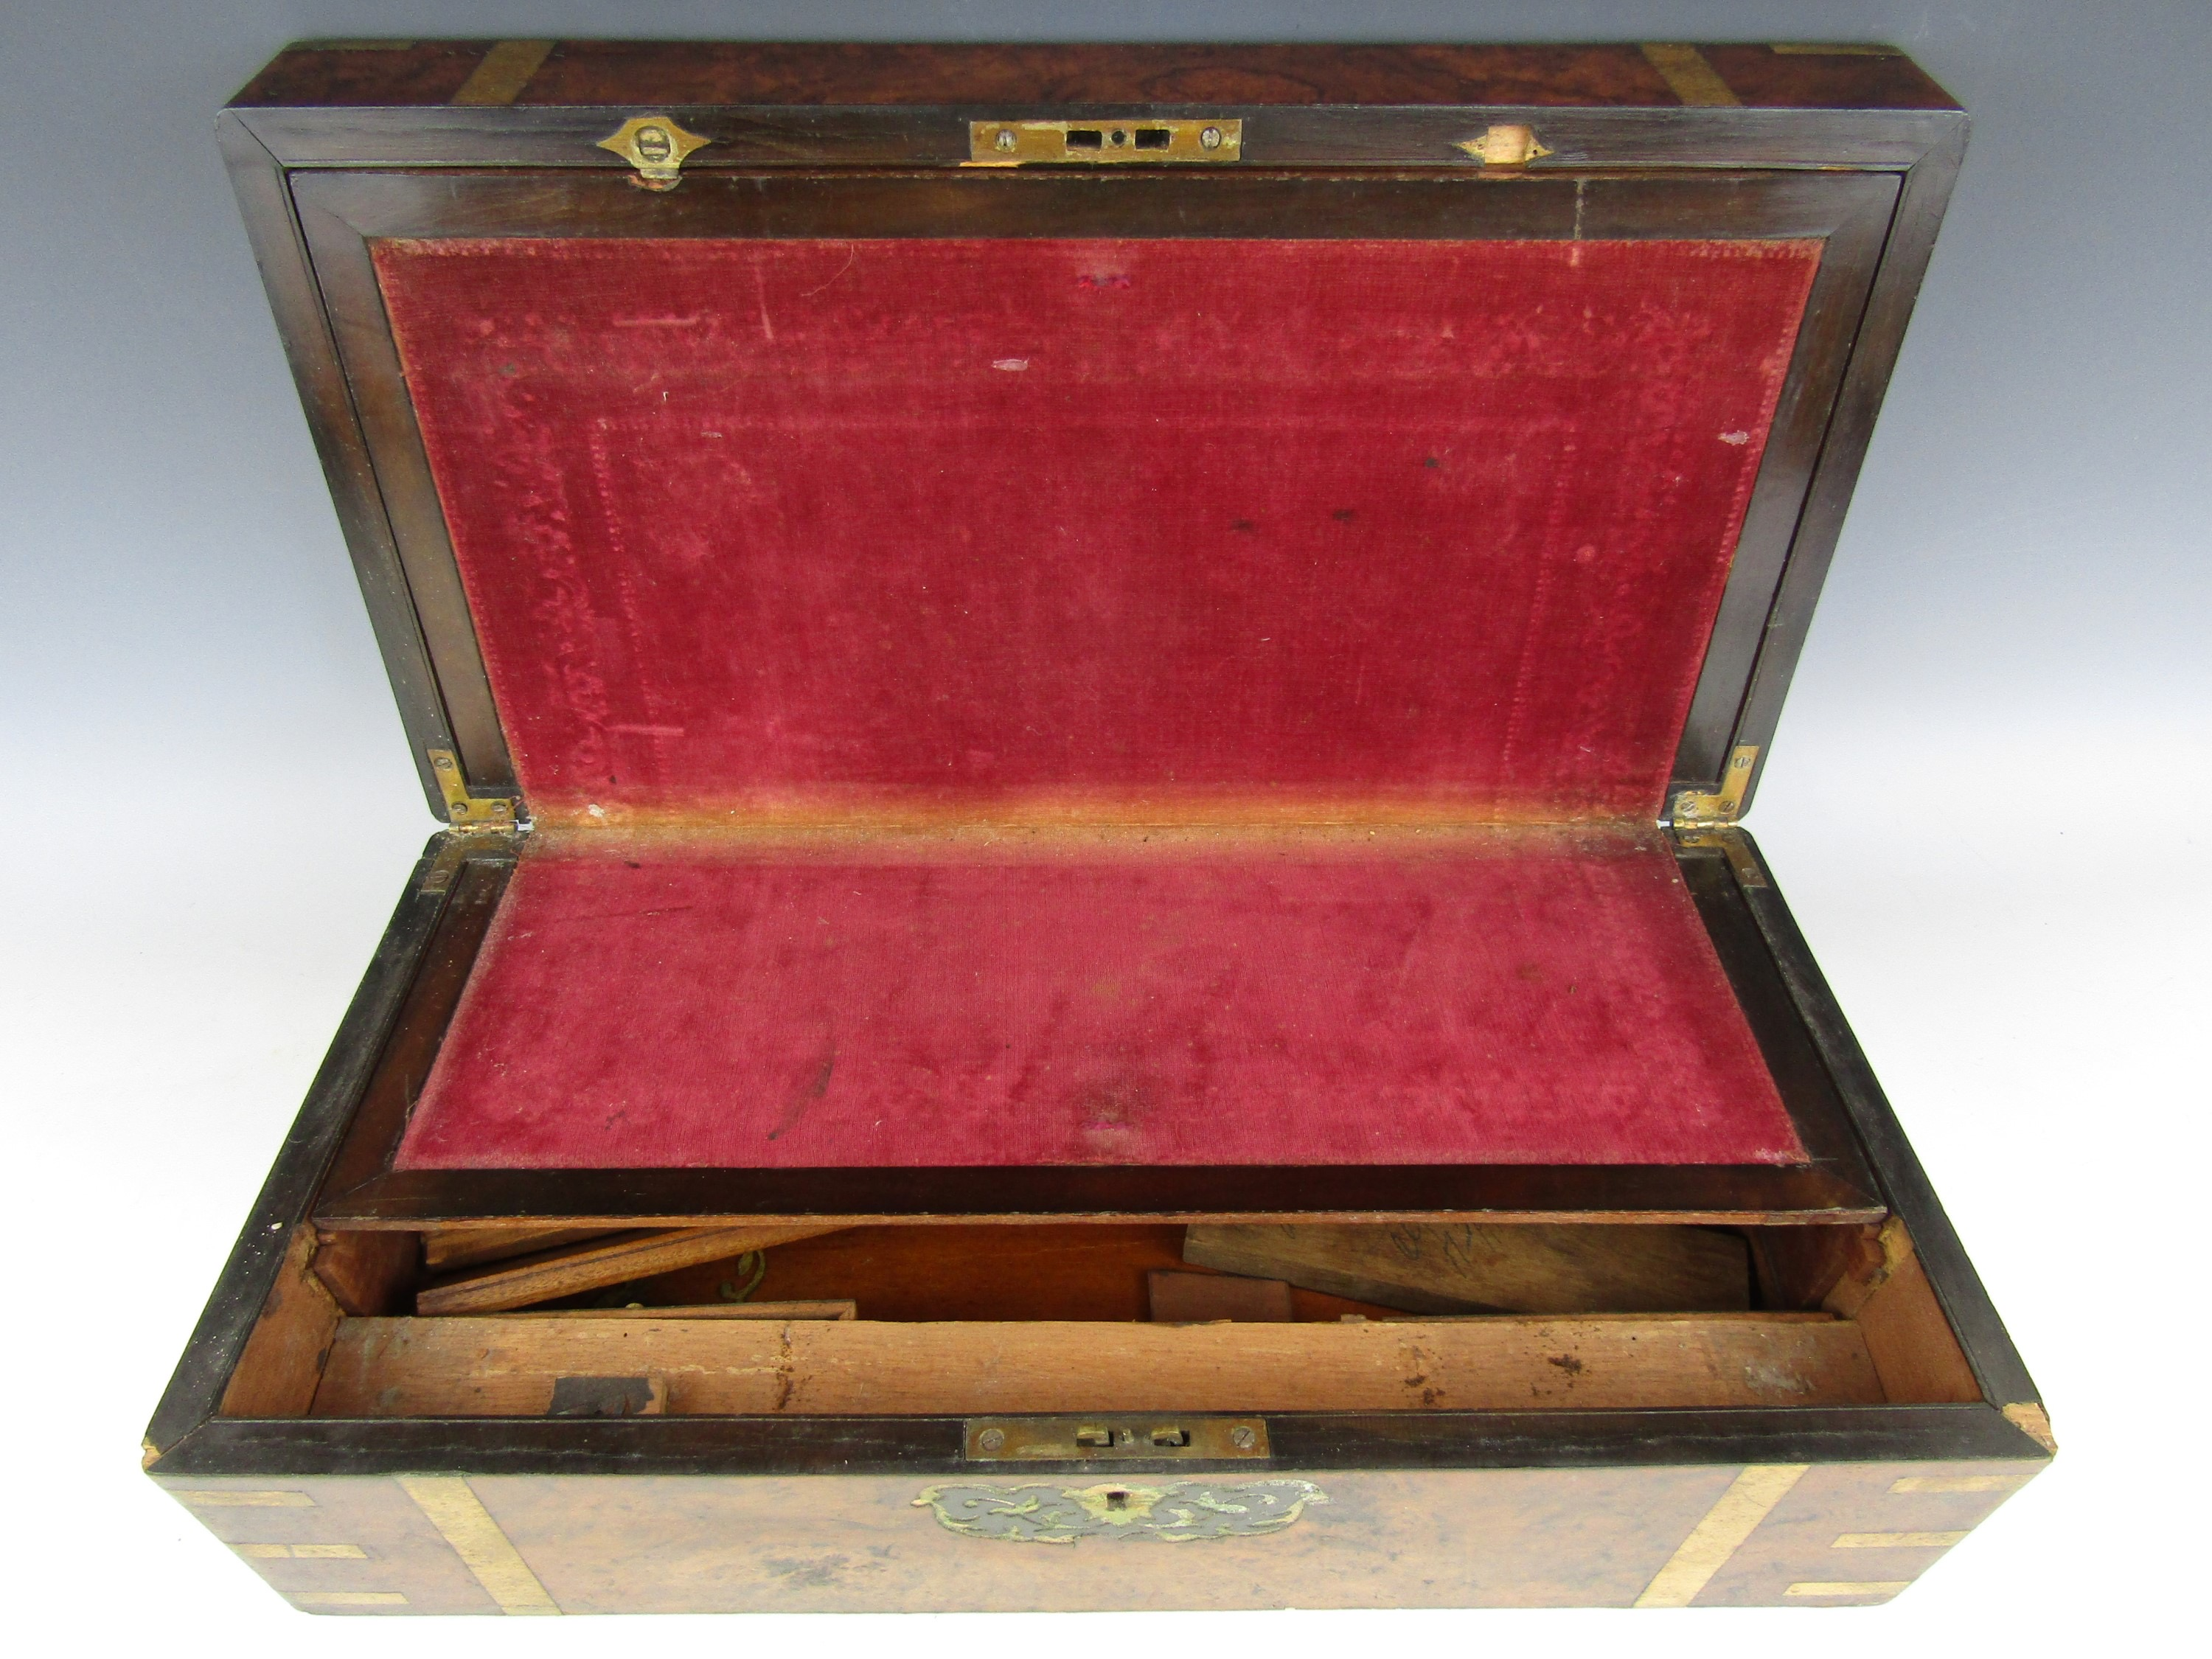 Lot 34 - A Victorian brass-inlaid burr walnut portable writing box